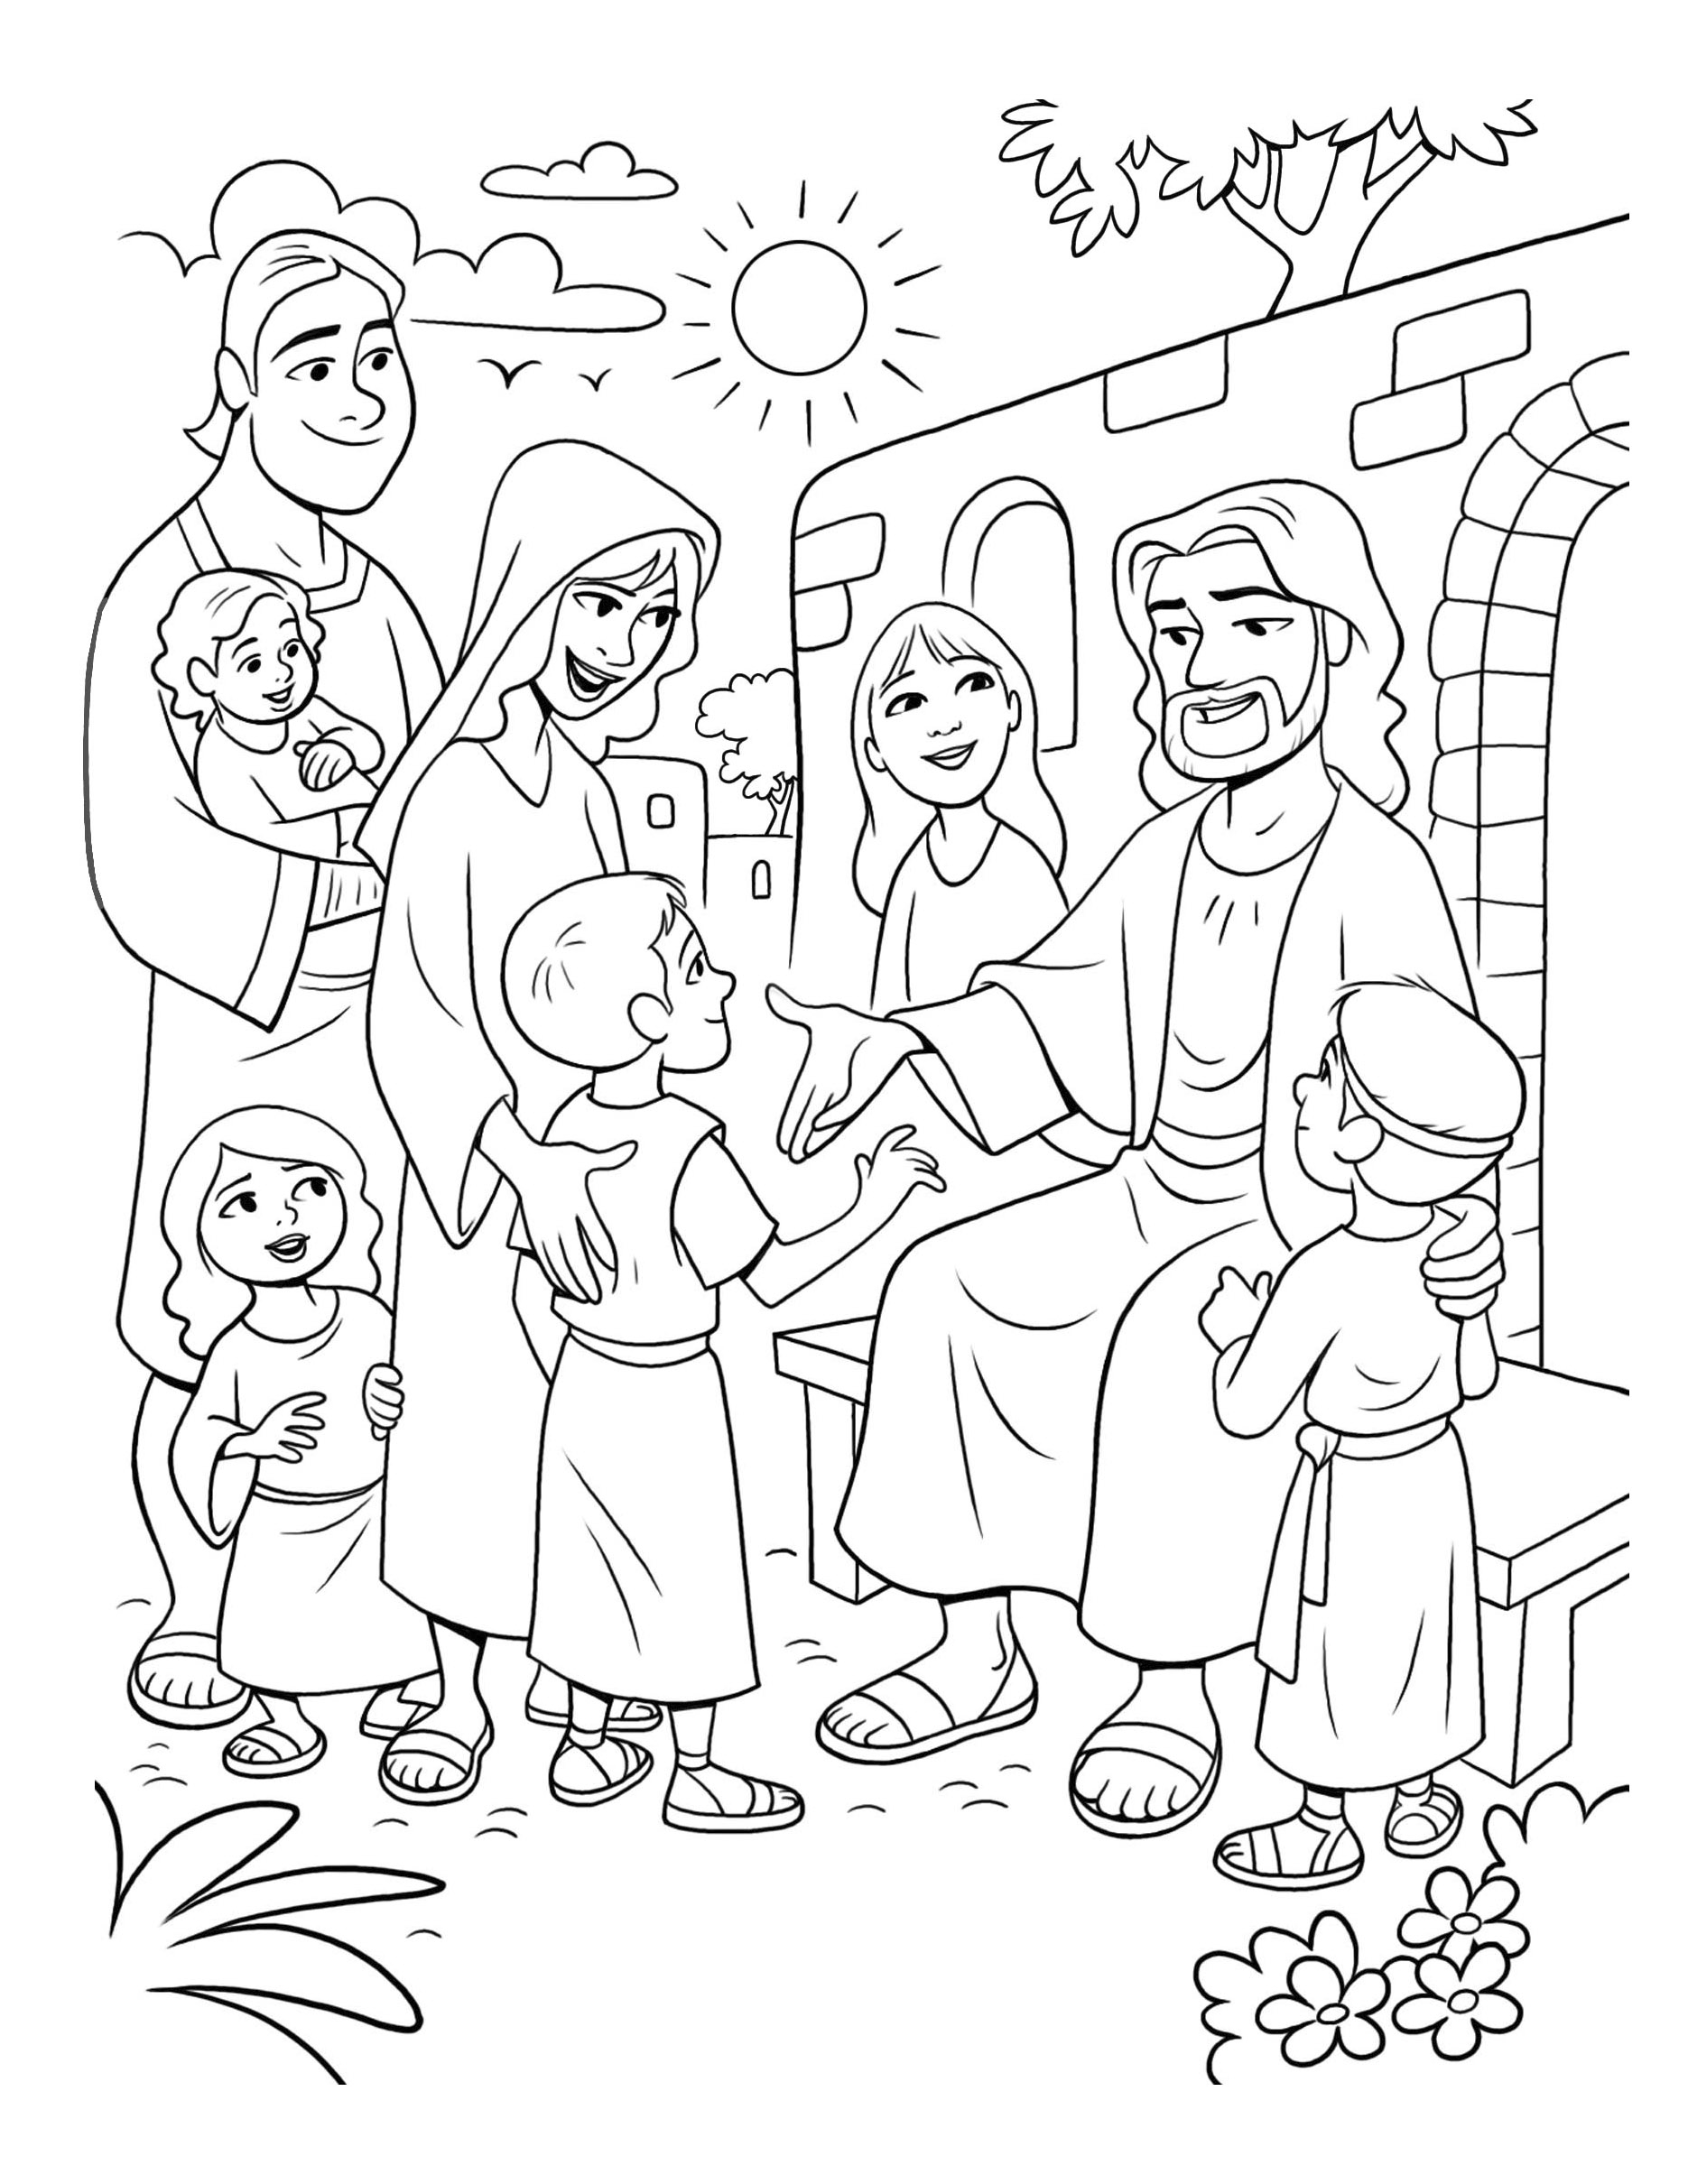 Christ sits and meets with children.